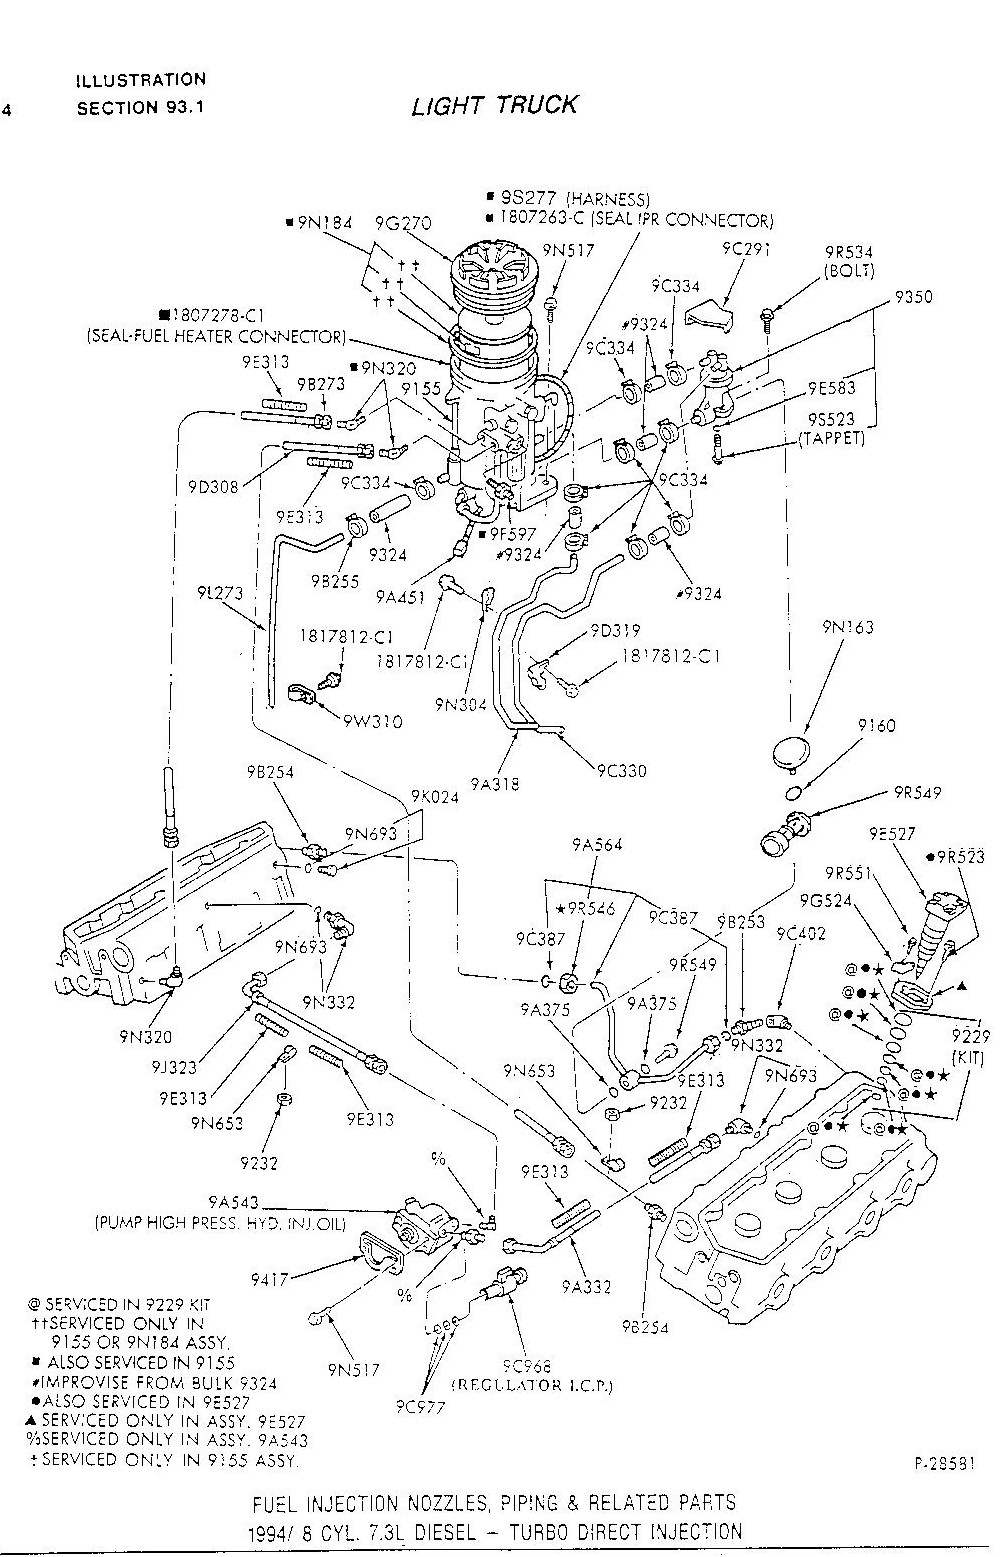 Schematic of fuel bowl tips diesel thedieselstop 1996 ford f350 diesel fuse box diagram